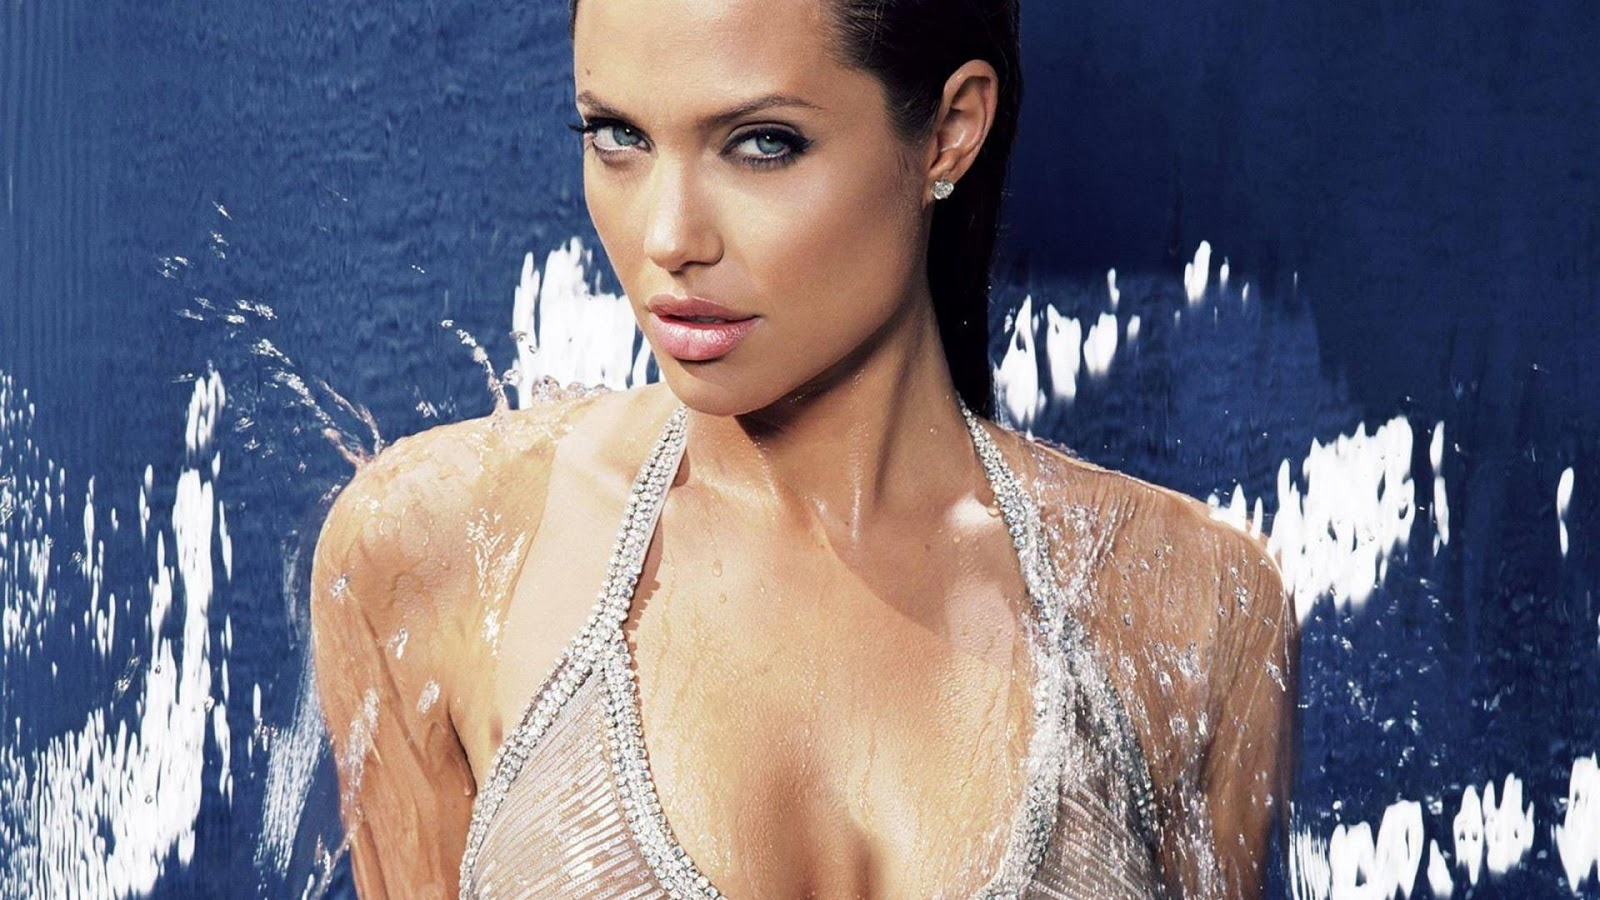 Angelina Jolie bathing - Hot actress bold pics sexy images of hollywood seducing celebrity